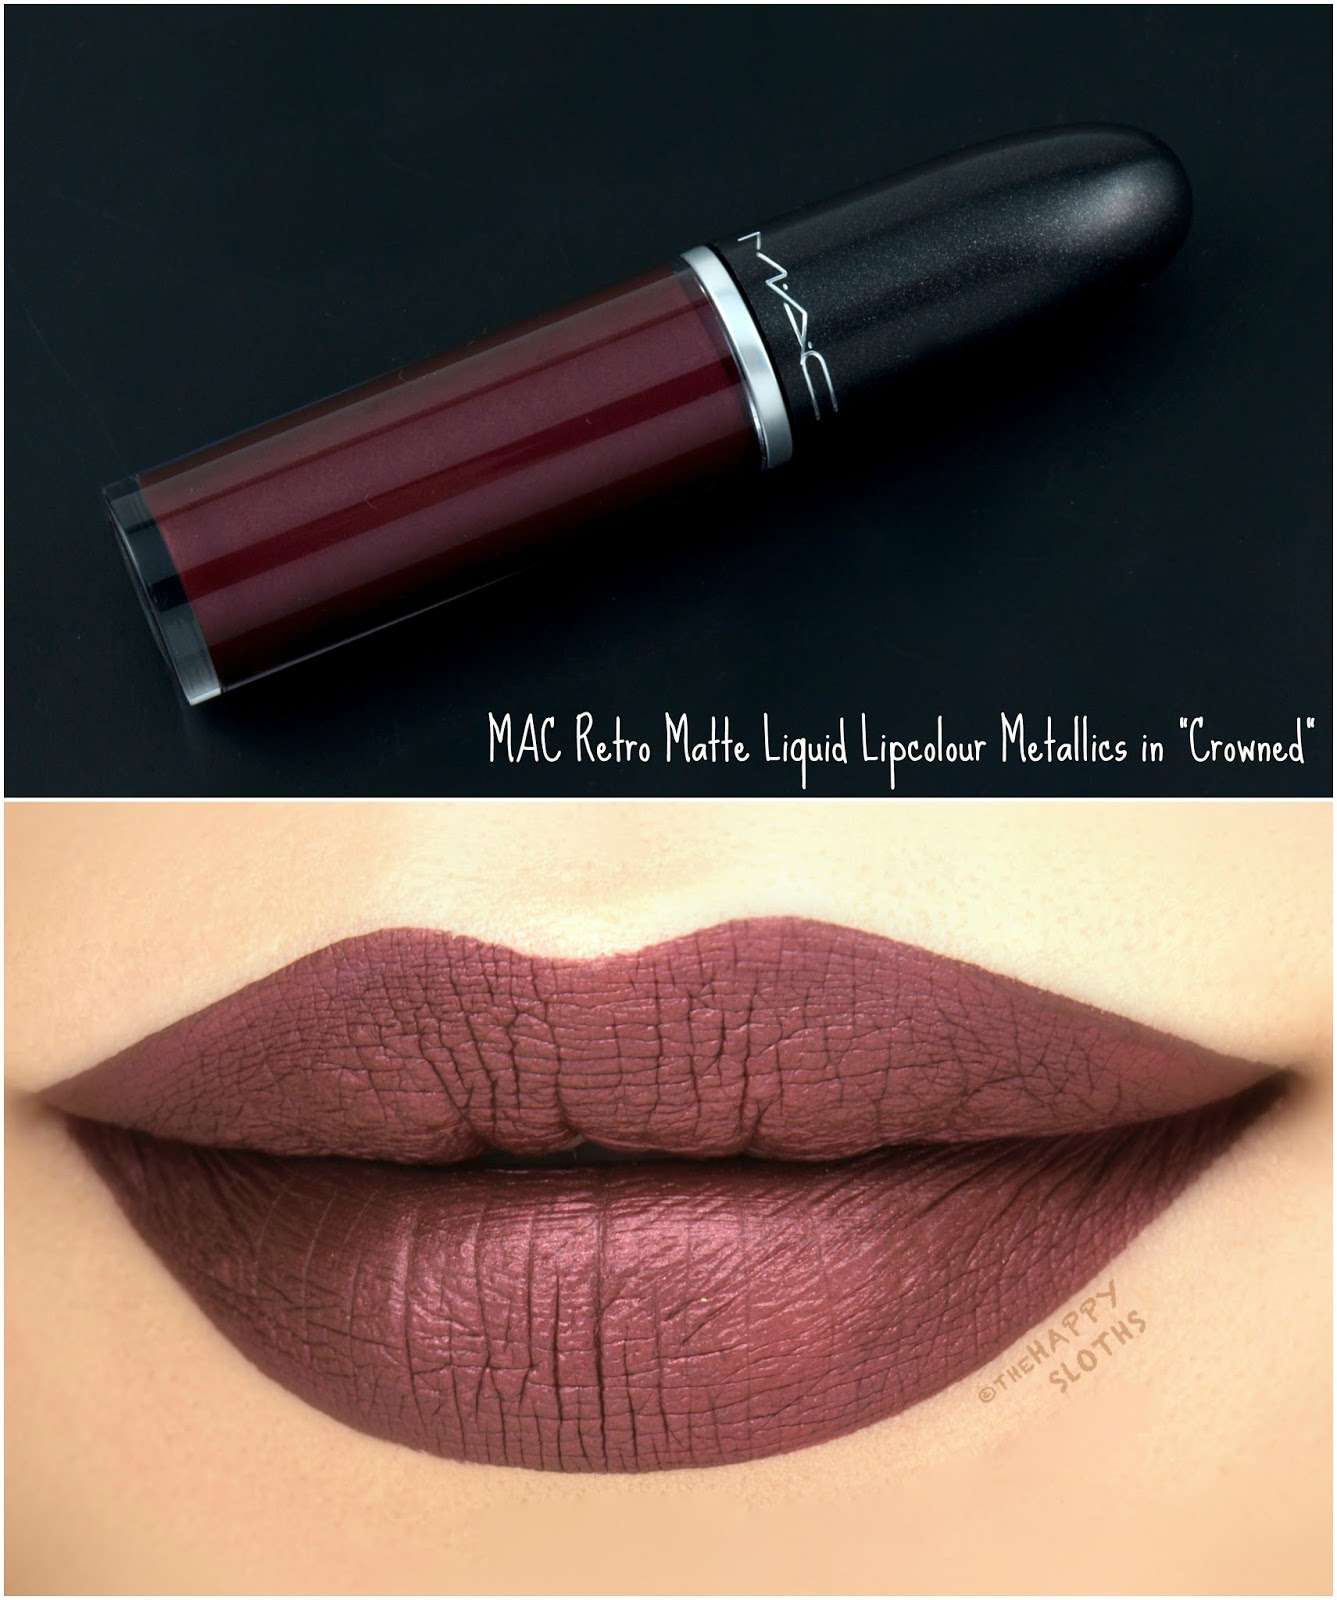 "MAC Retro Matte Liquid Lipcolor Metallics in ""Crowned"": Review and Swatches"